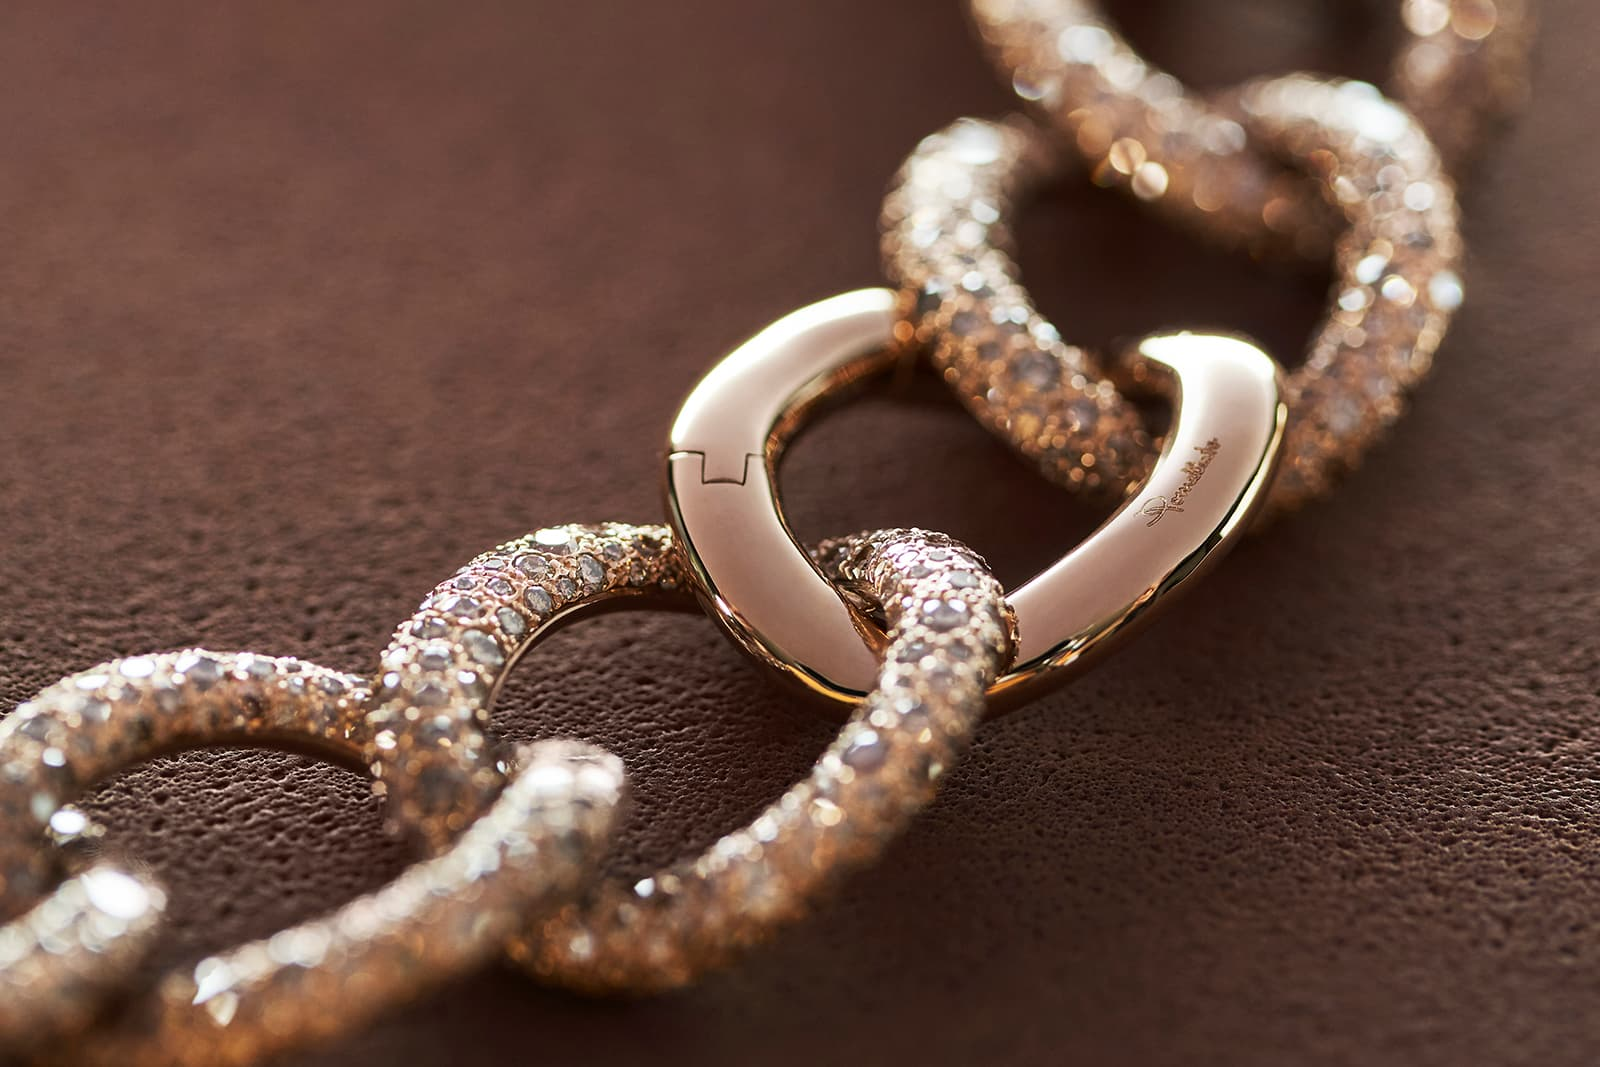 Each Pomellato gold chain is endowed with a feminine sensuality